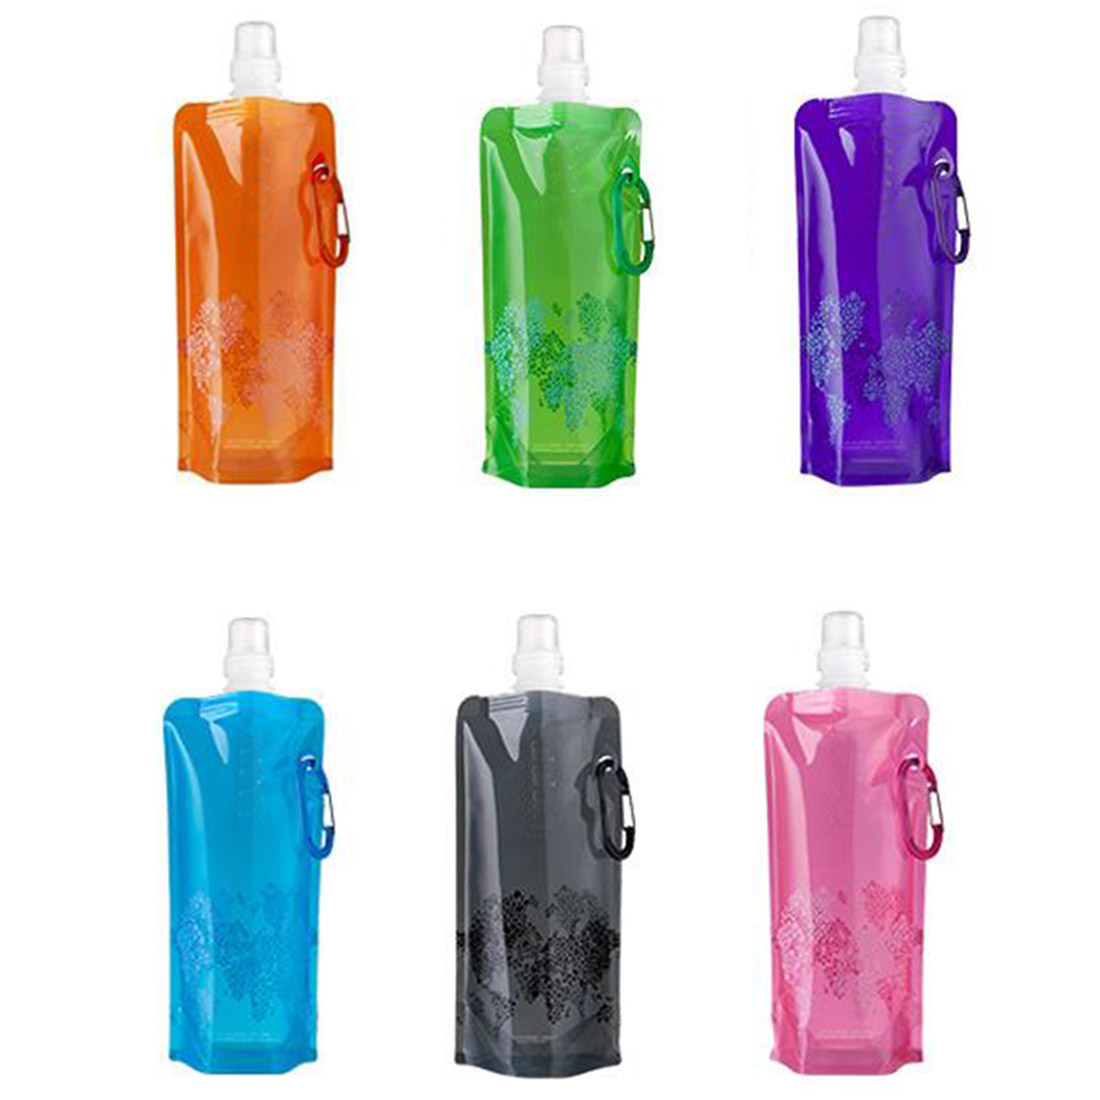 Hot Useful 480ml Portable Foldable Water Bottle Ice Bag Running Outdoor Sport Camping Hiking Random Color